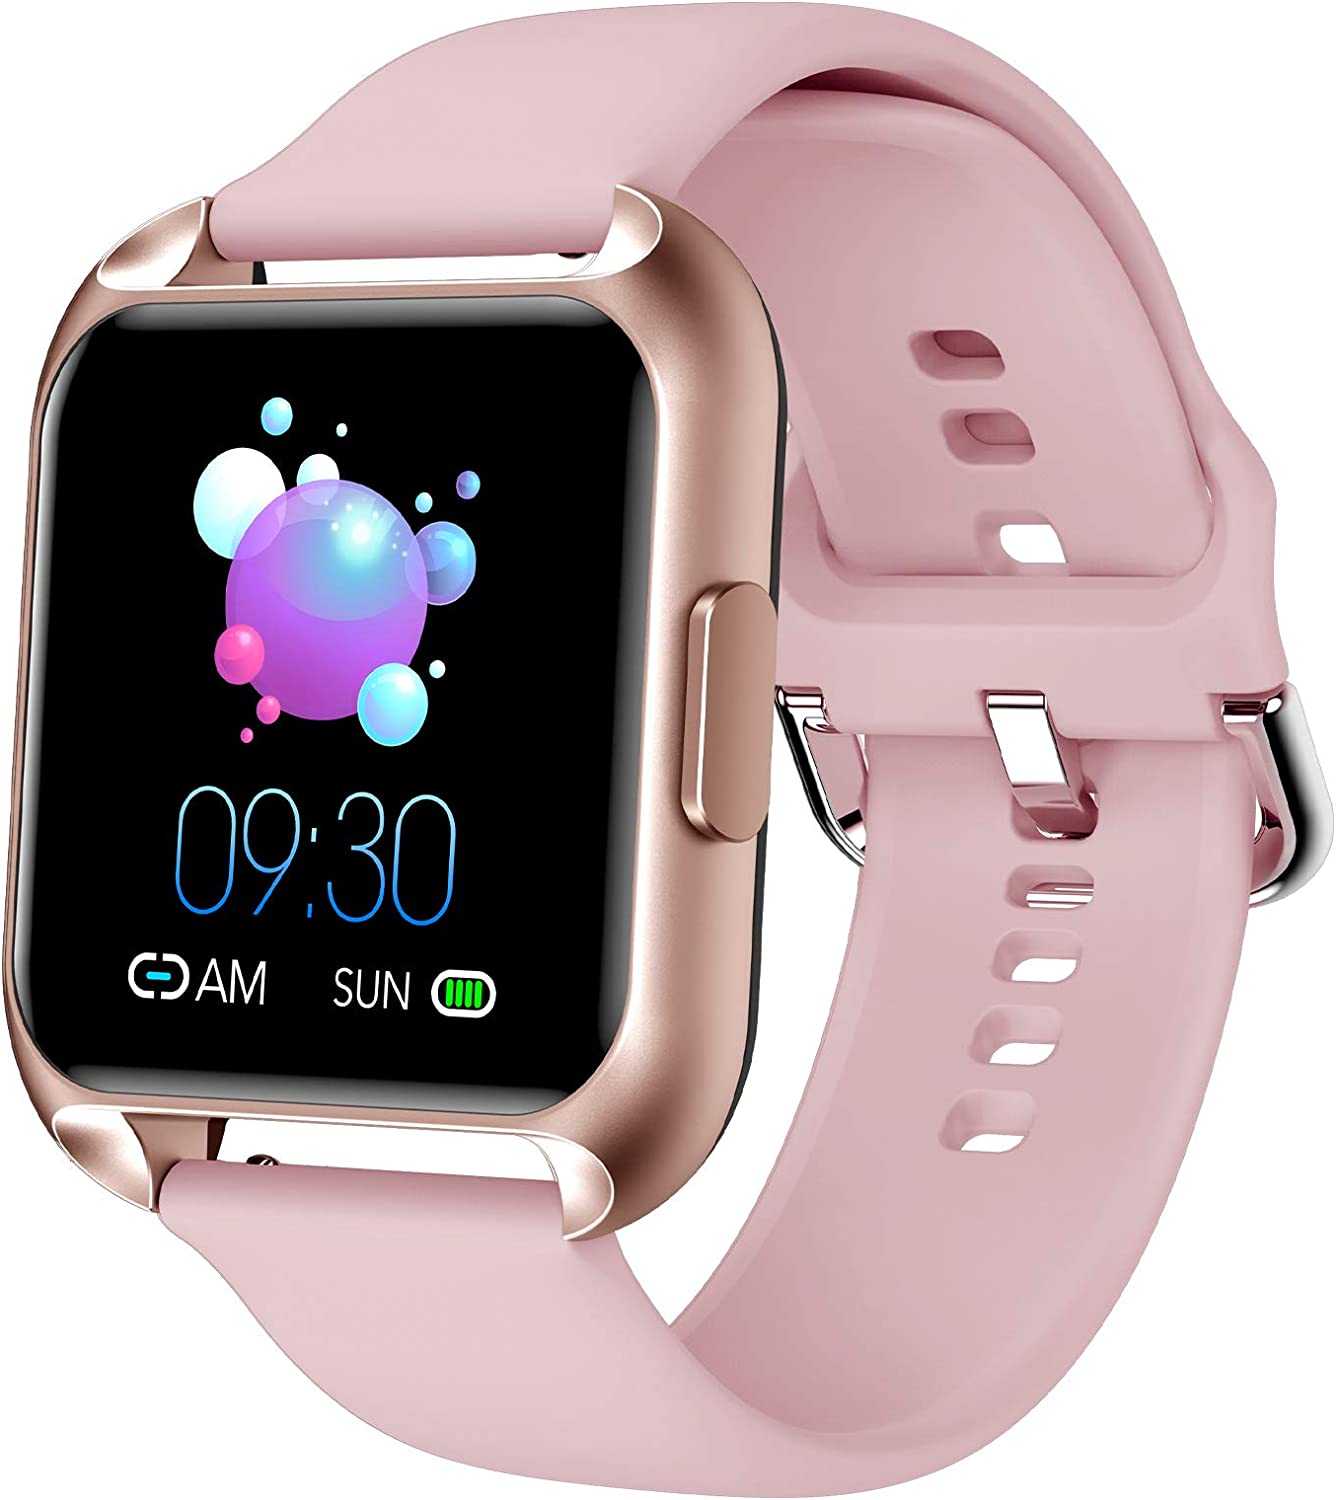 MAXTOP Smart Watch Compatible iPhone Android Phones Waterproof Activity Tracker Watch Heart Rate & Blood Oxygen Monitor Multifunction Smartwatch with Blood Pressure Sleep Tracker for Women (Pink)